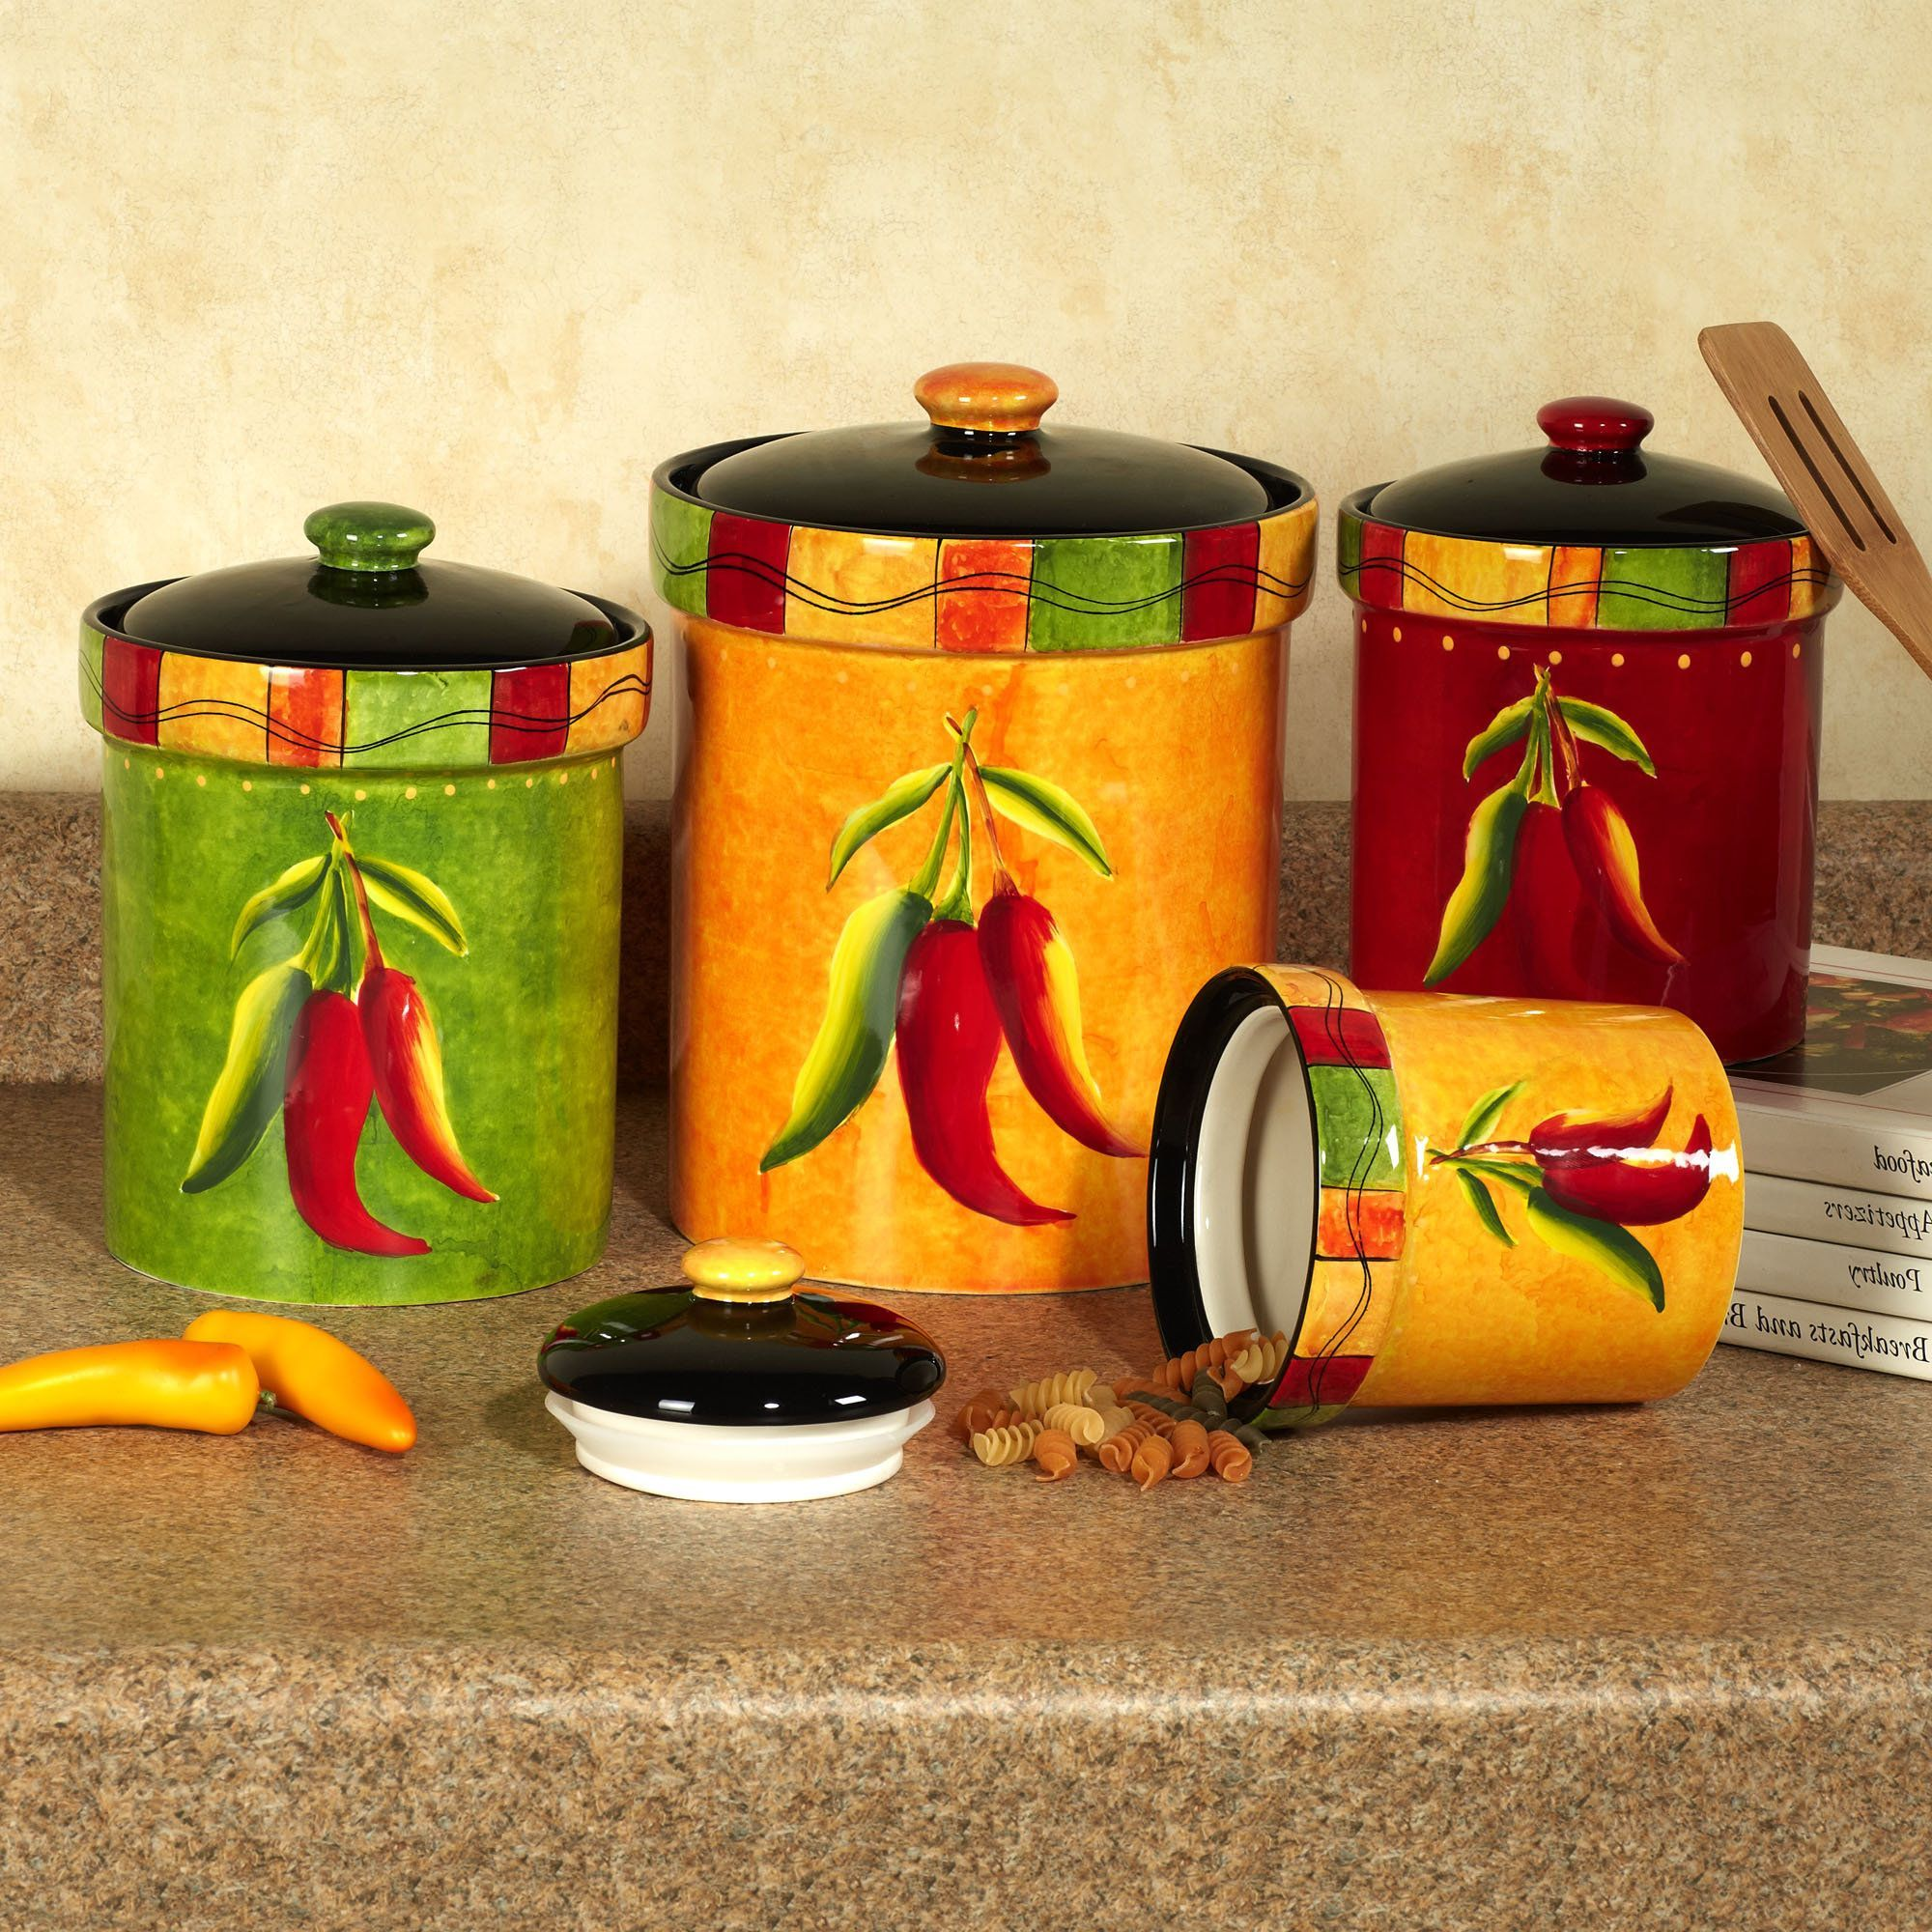 Chili Pepper Decor Of Kitchen Nice Colorful Jar With Peppers